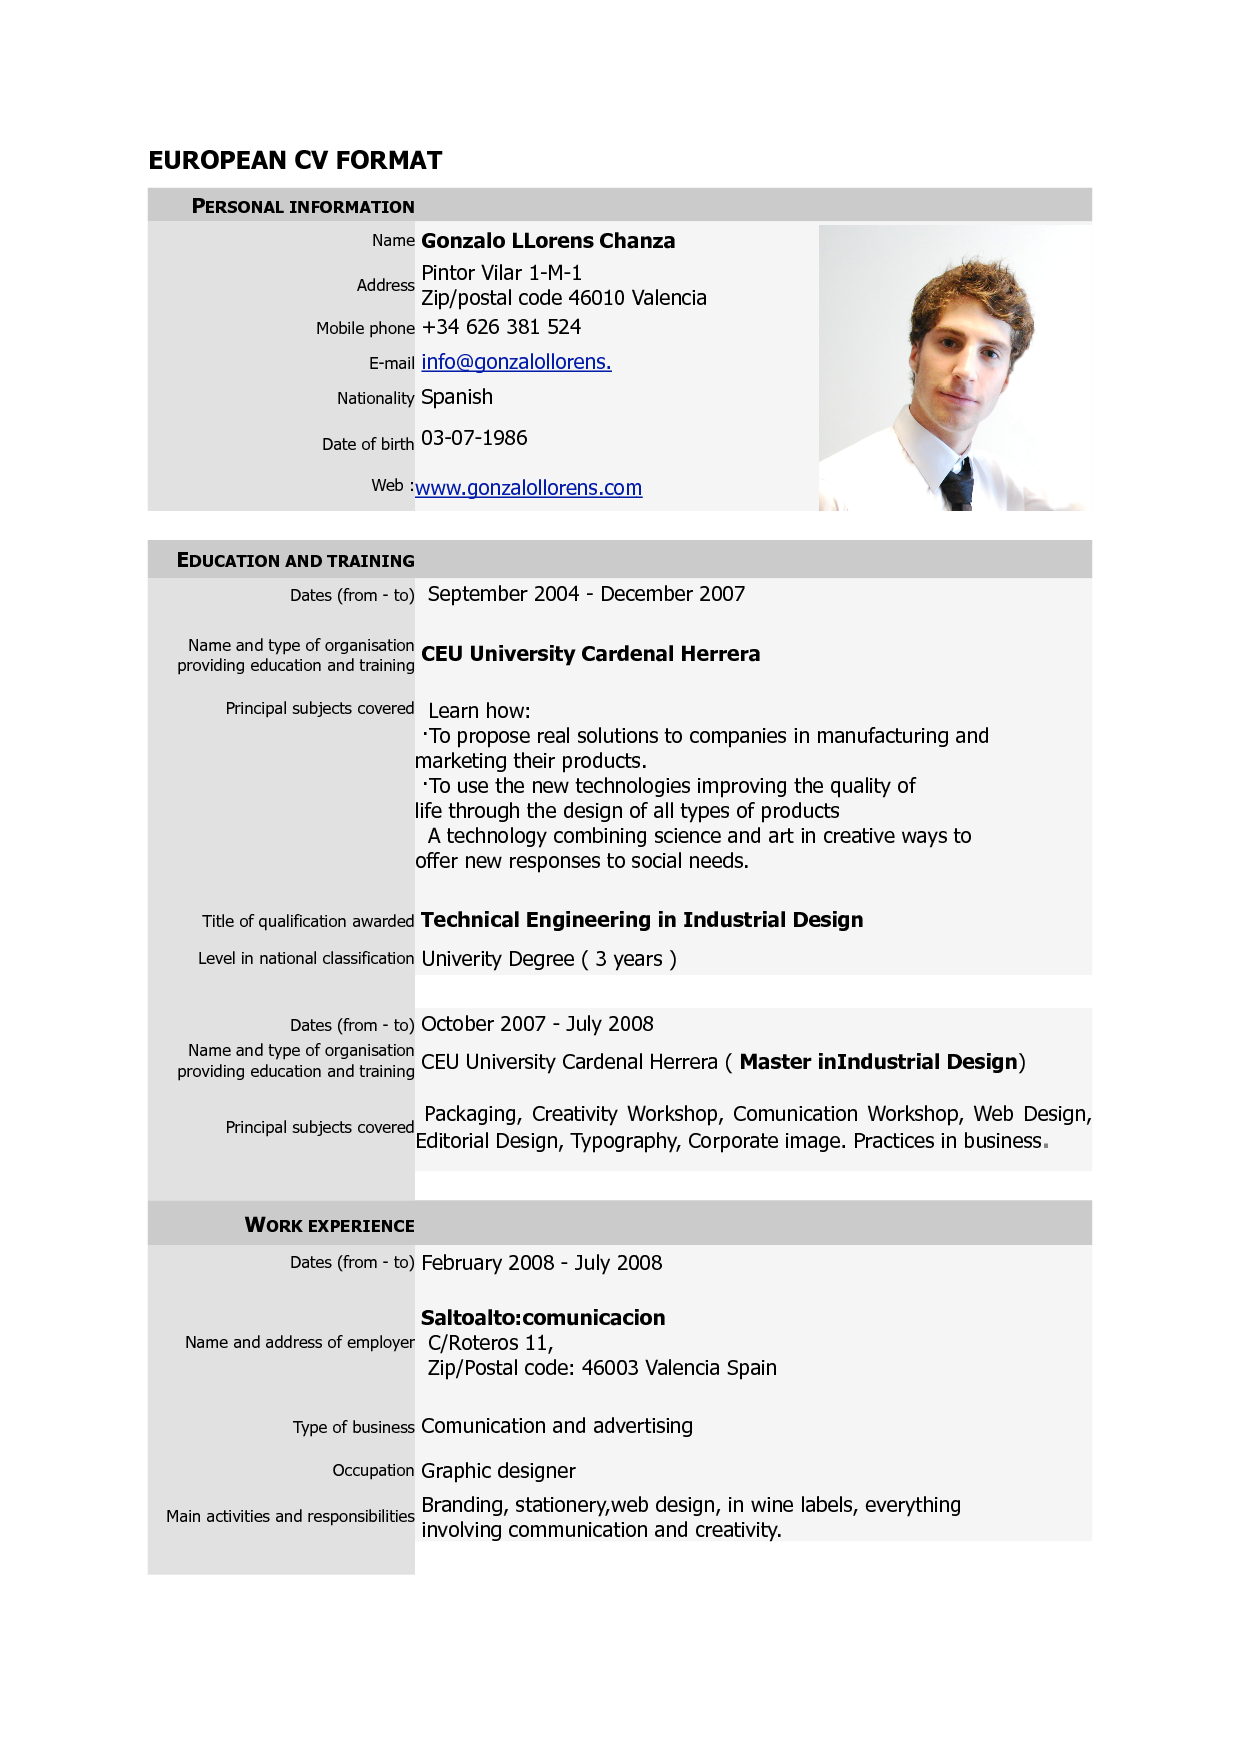 free download cv europass pdf europass home european cv format pdf - Samples Of Resume Pdf